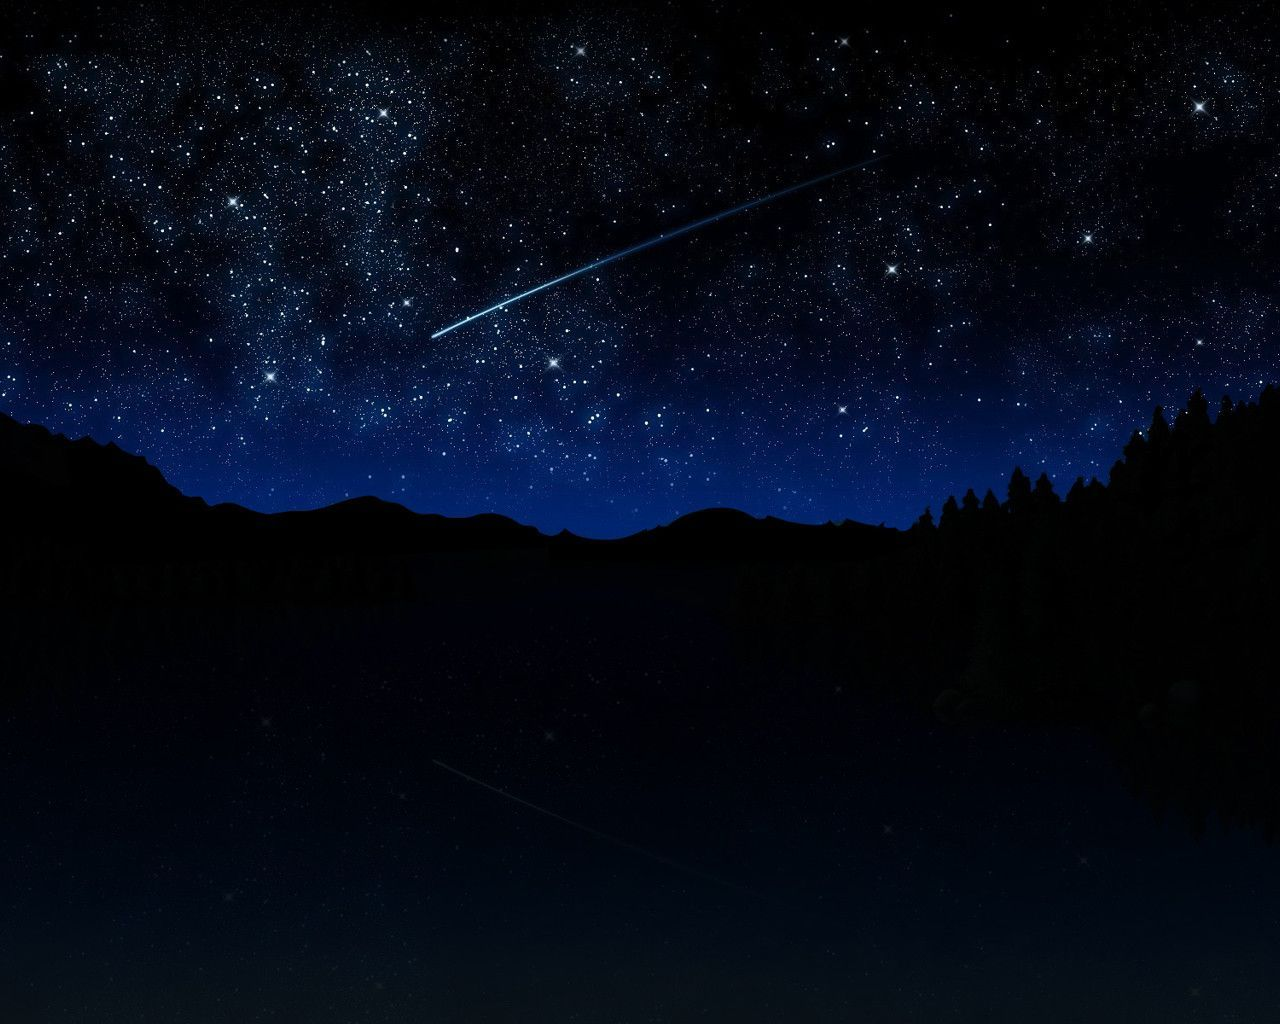 Hd wallpaper night - Real Night Sky Wallpaper Hd Images Pictures Becuo